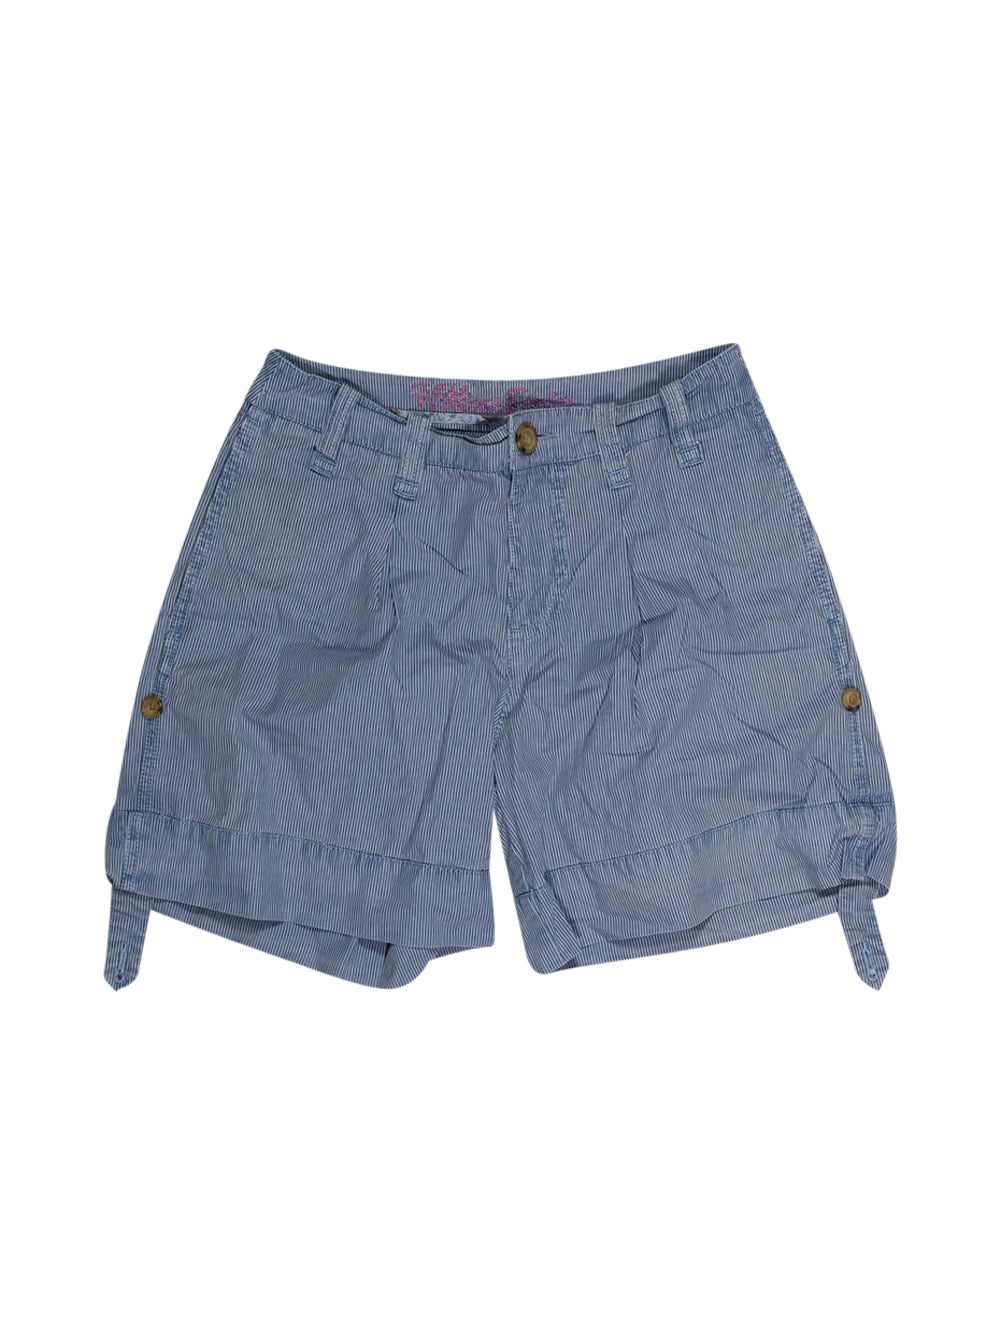 Front photo of Preloved Tommy Hilfiger Light-blue Woman's shorts - size 8/S